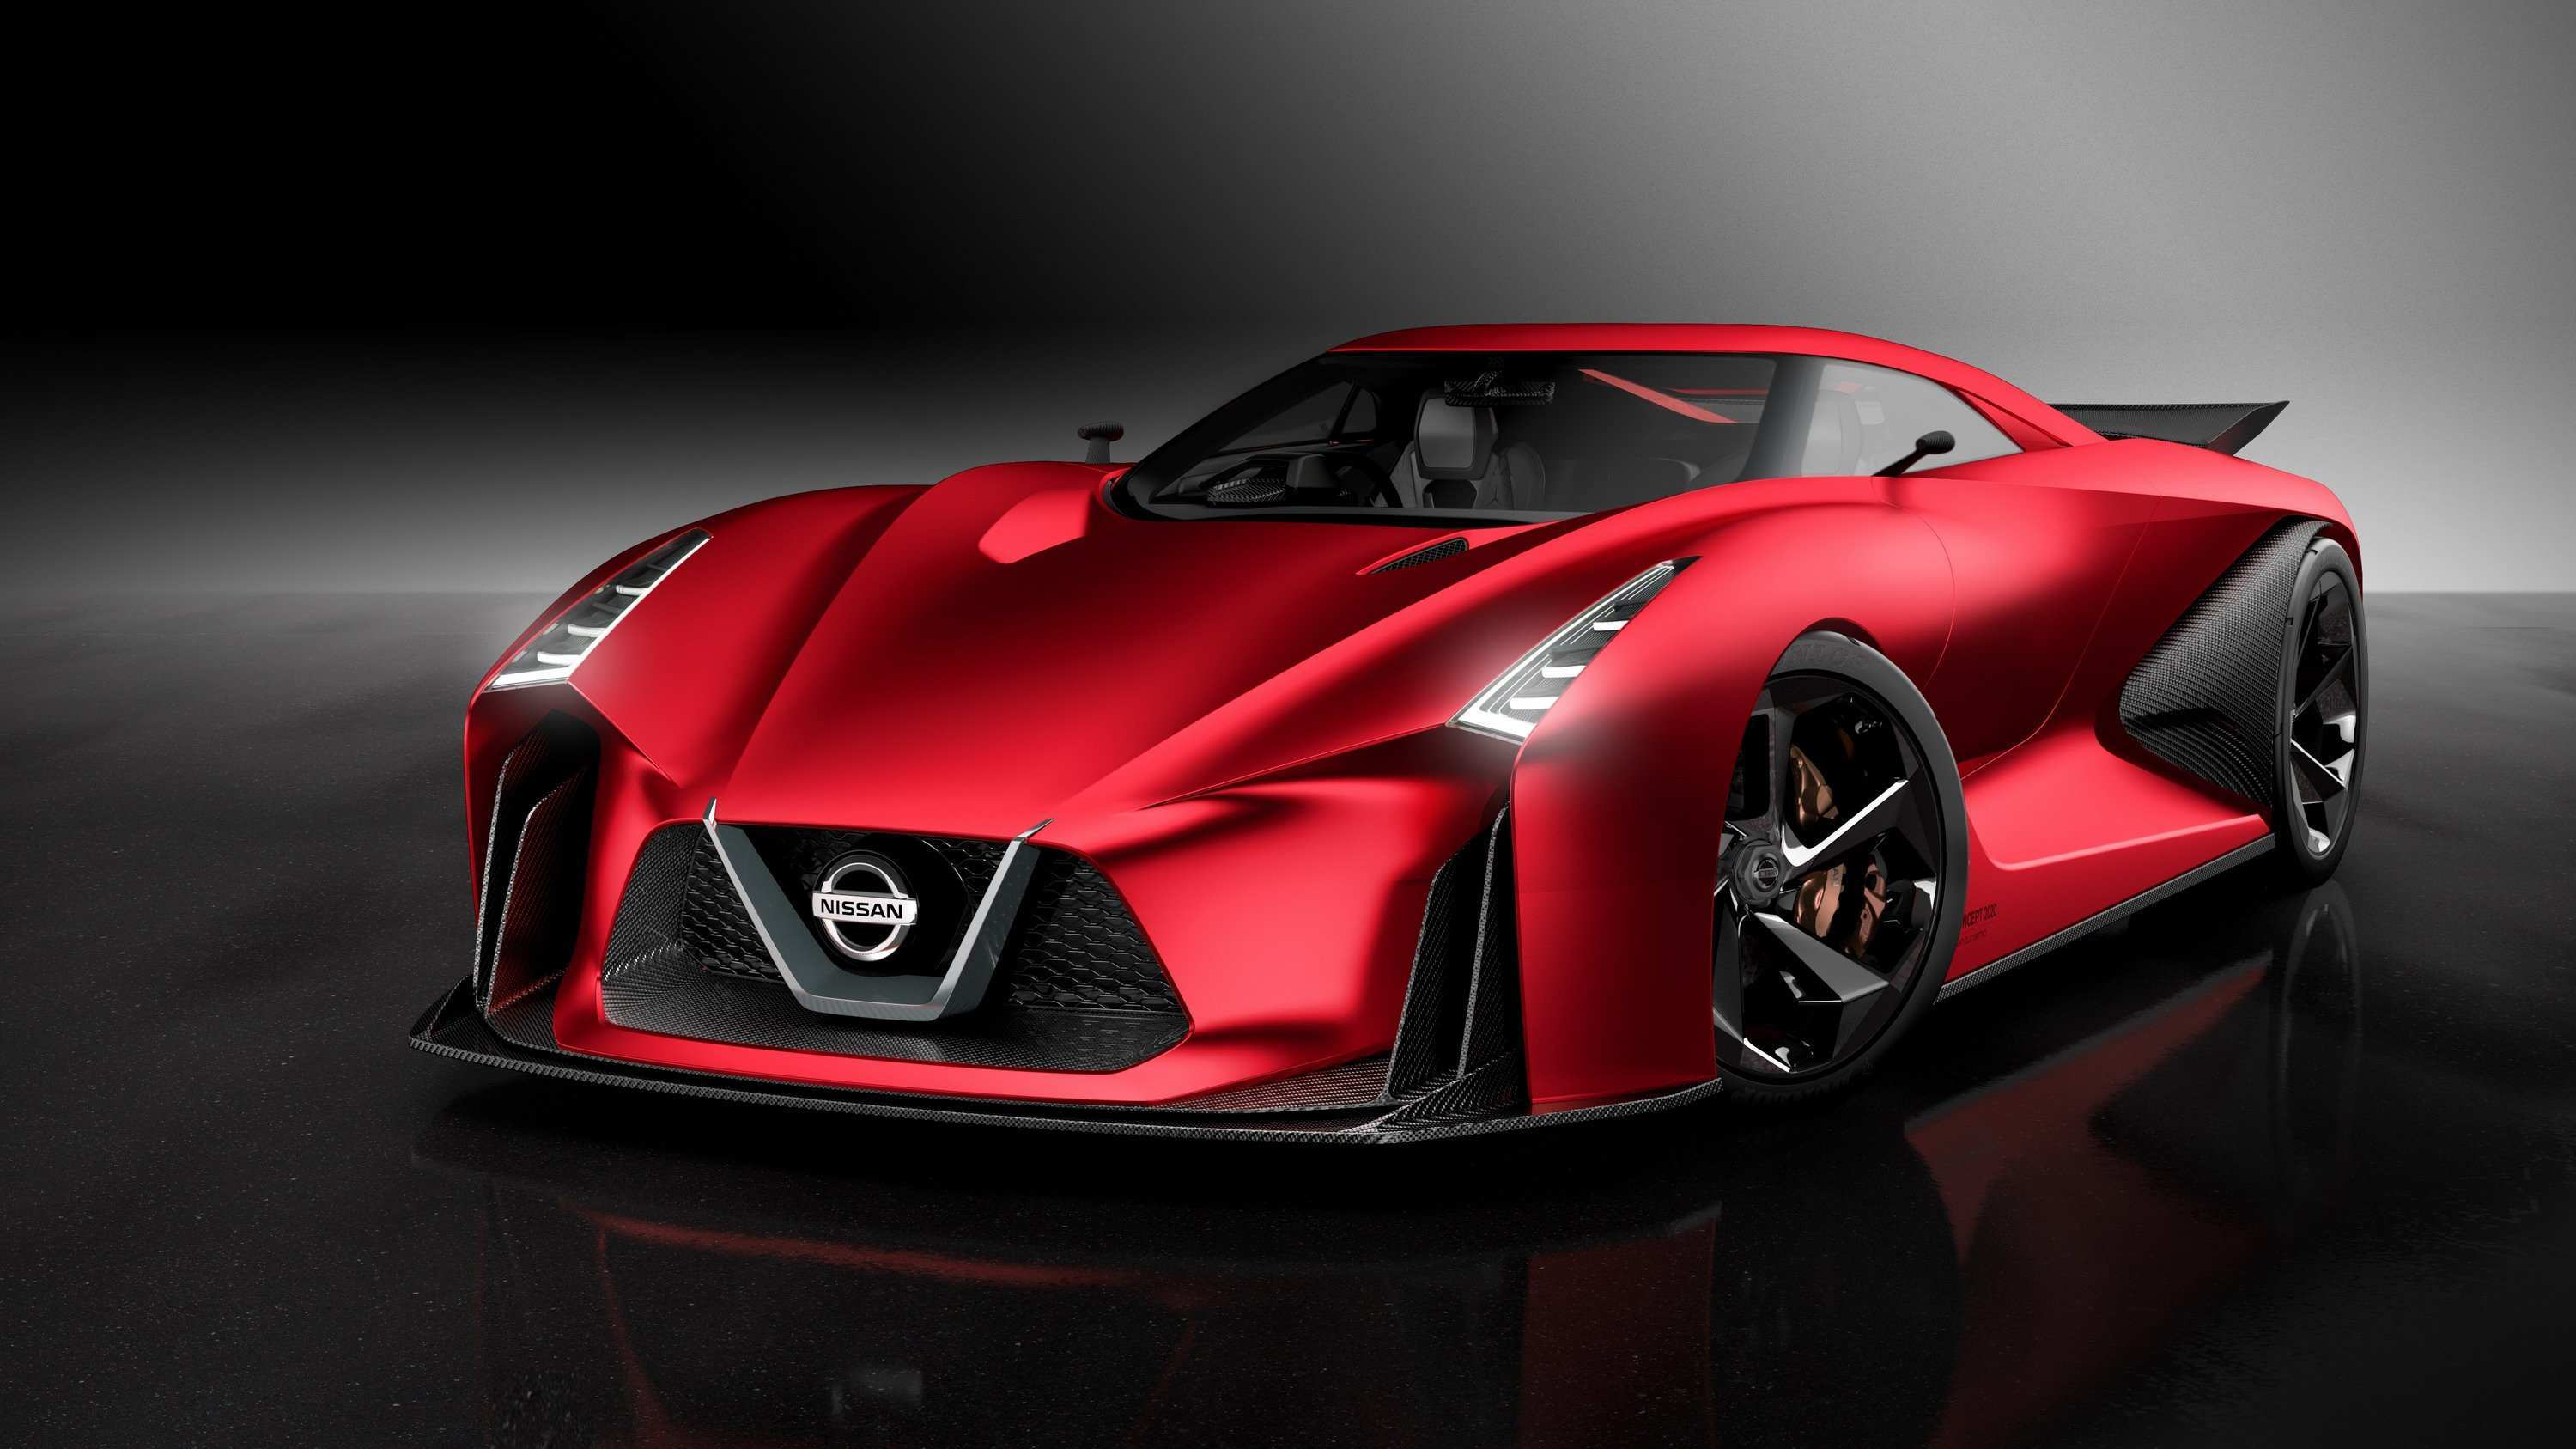 47 All New 2020 Nissan R36 Exterior and Interior for 2020 Nissan R36